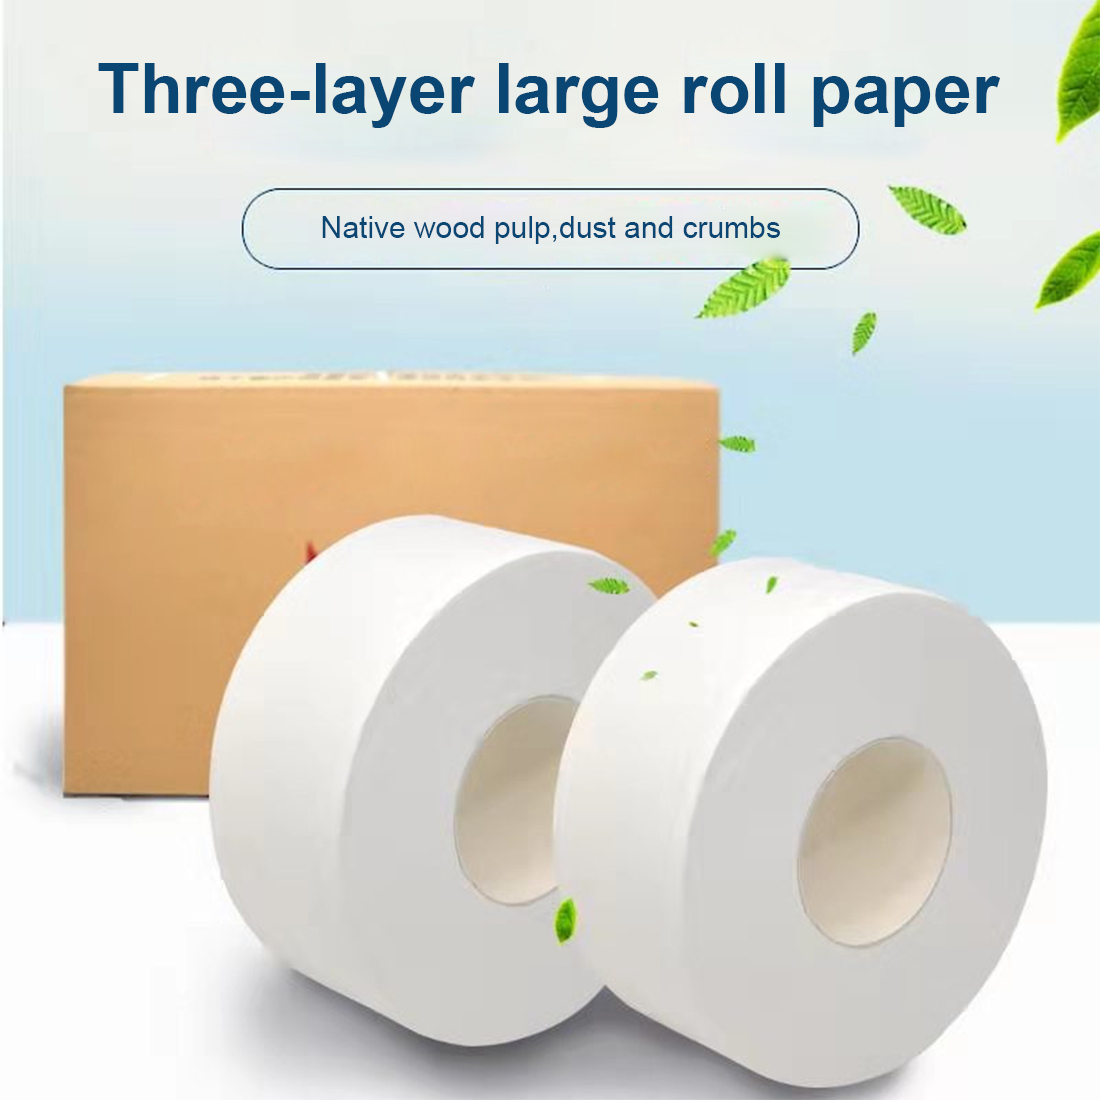 2 Roll Toilet Paper 580g Roll Kitchen Bath Tissue Roll Paper Soft Rolls Ultra Long 950 Sheet Jumbo Towels For Home Public Hotel